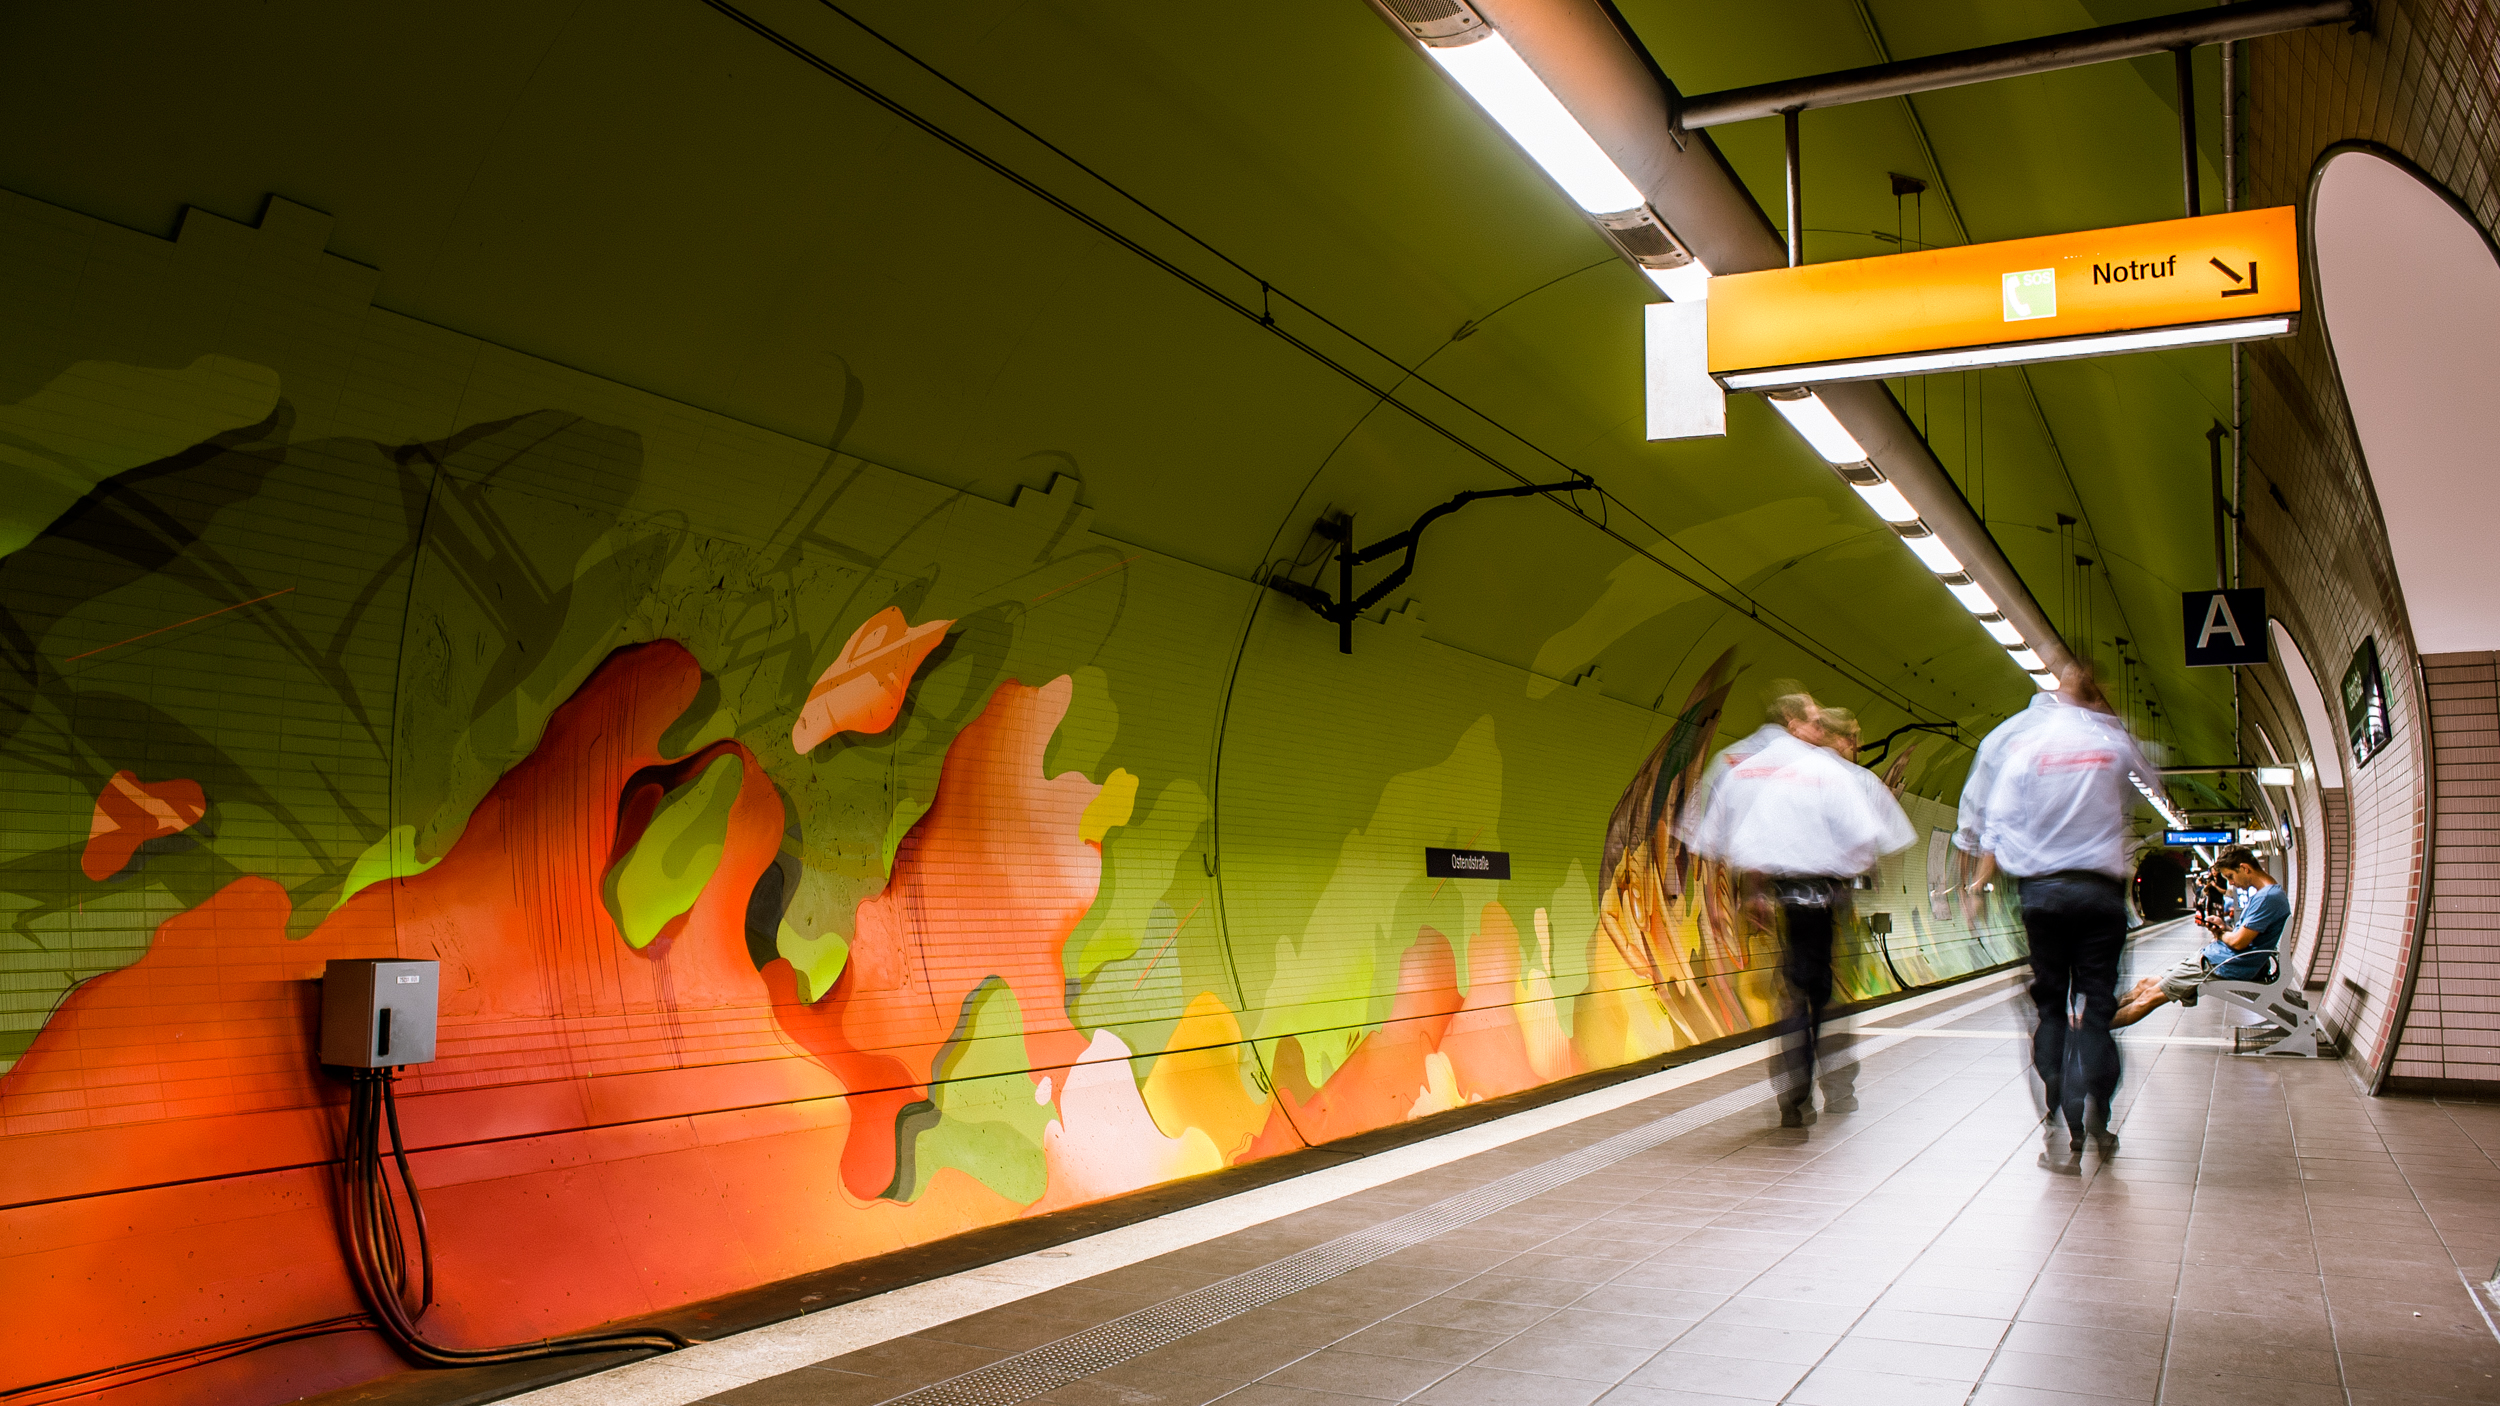 A work by Does - Ostendstrasse frankfurt germany tunnel 32